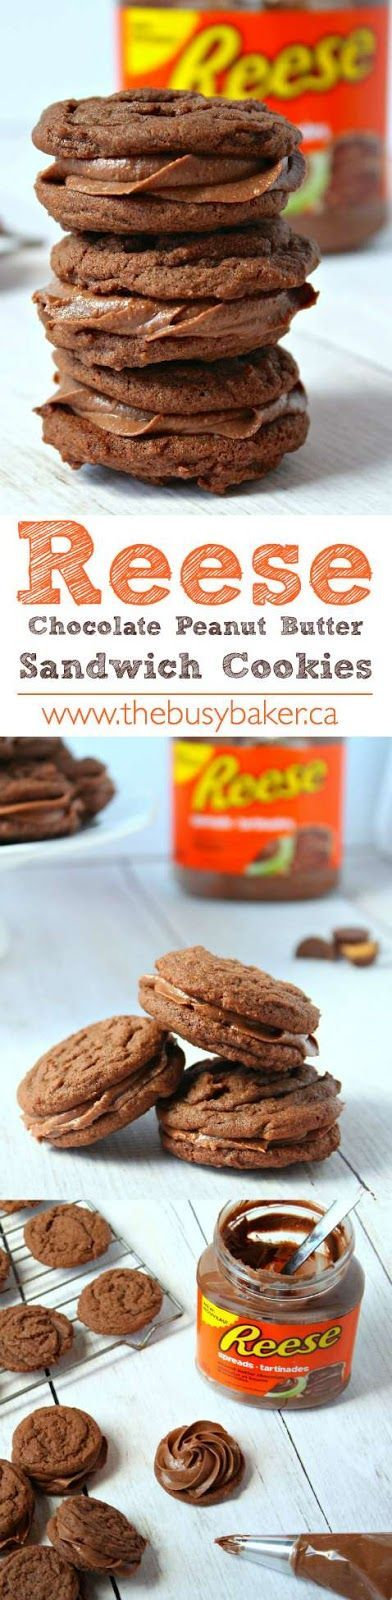 The Busy Baker: REESE Peanut Butter Chocolate Sandwich Cookies